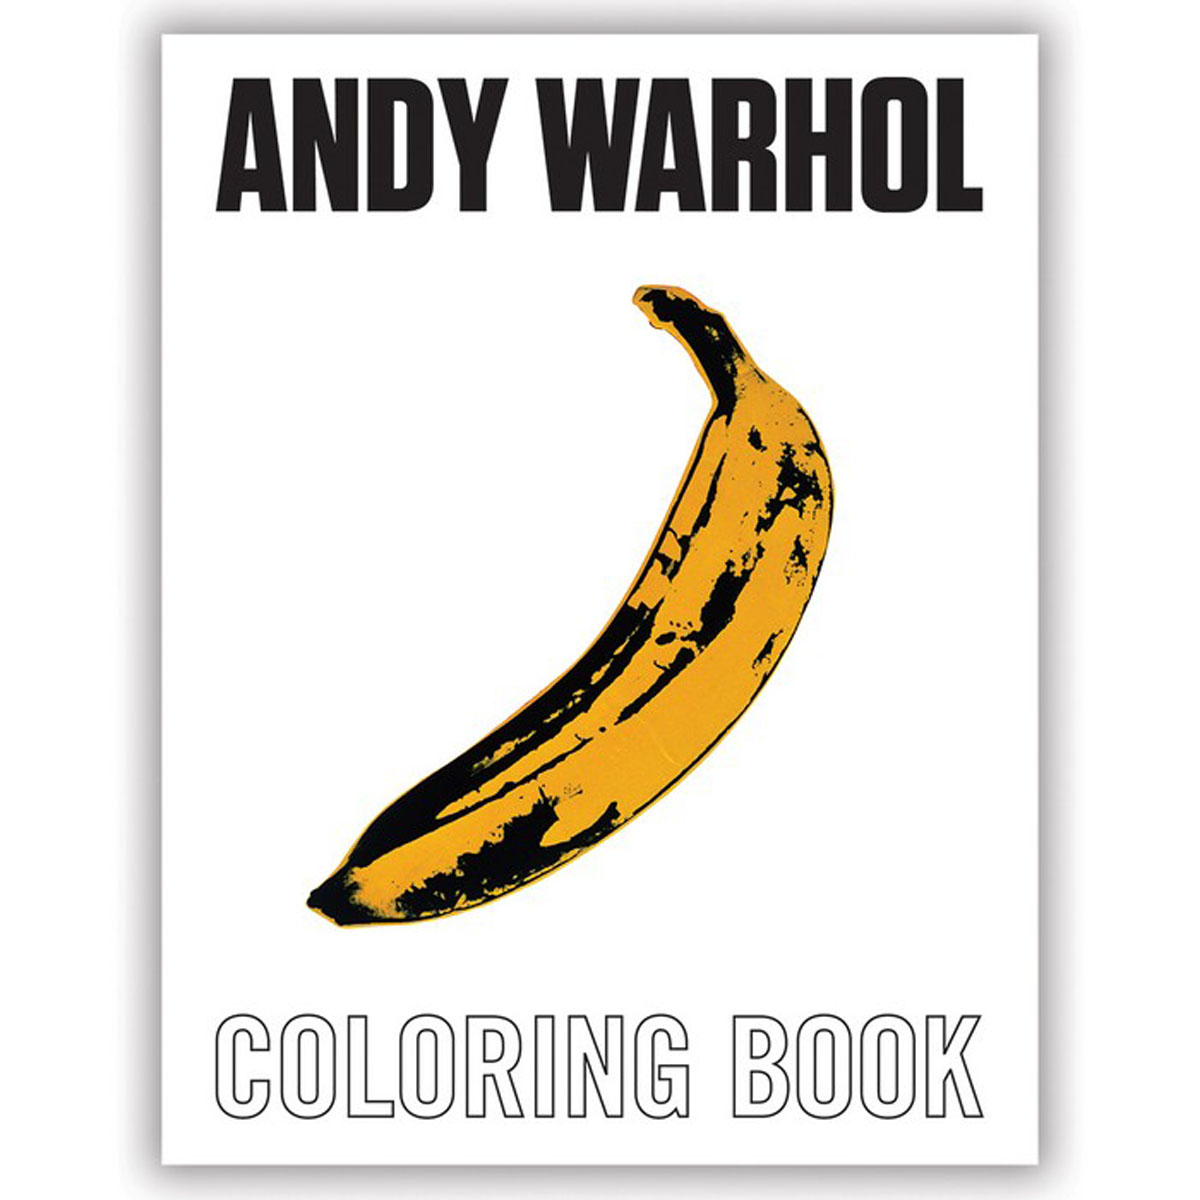 Andy Warhol Coloring Book andy warhol a a novel